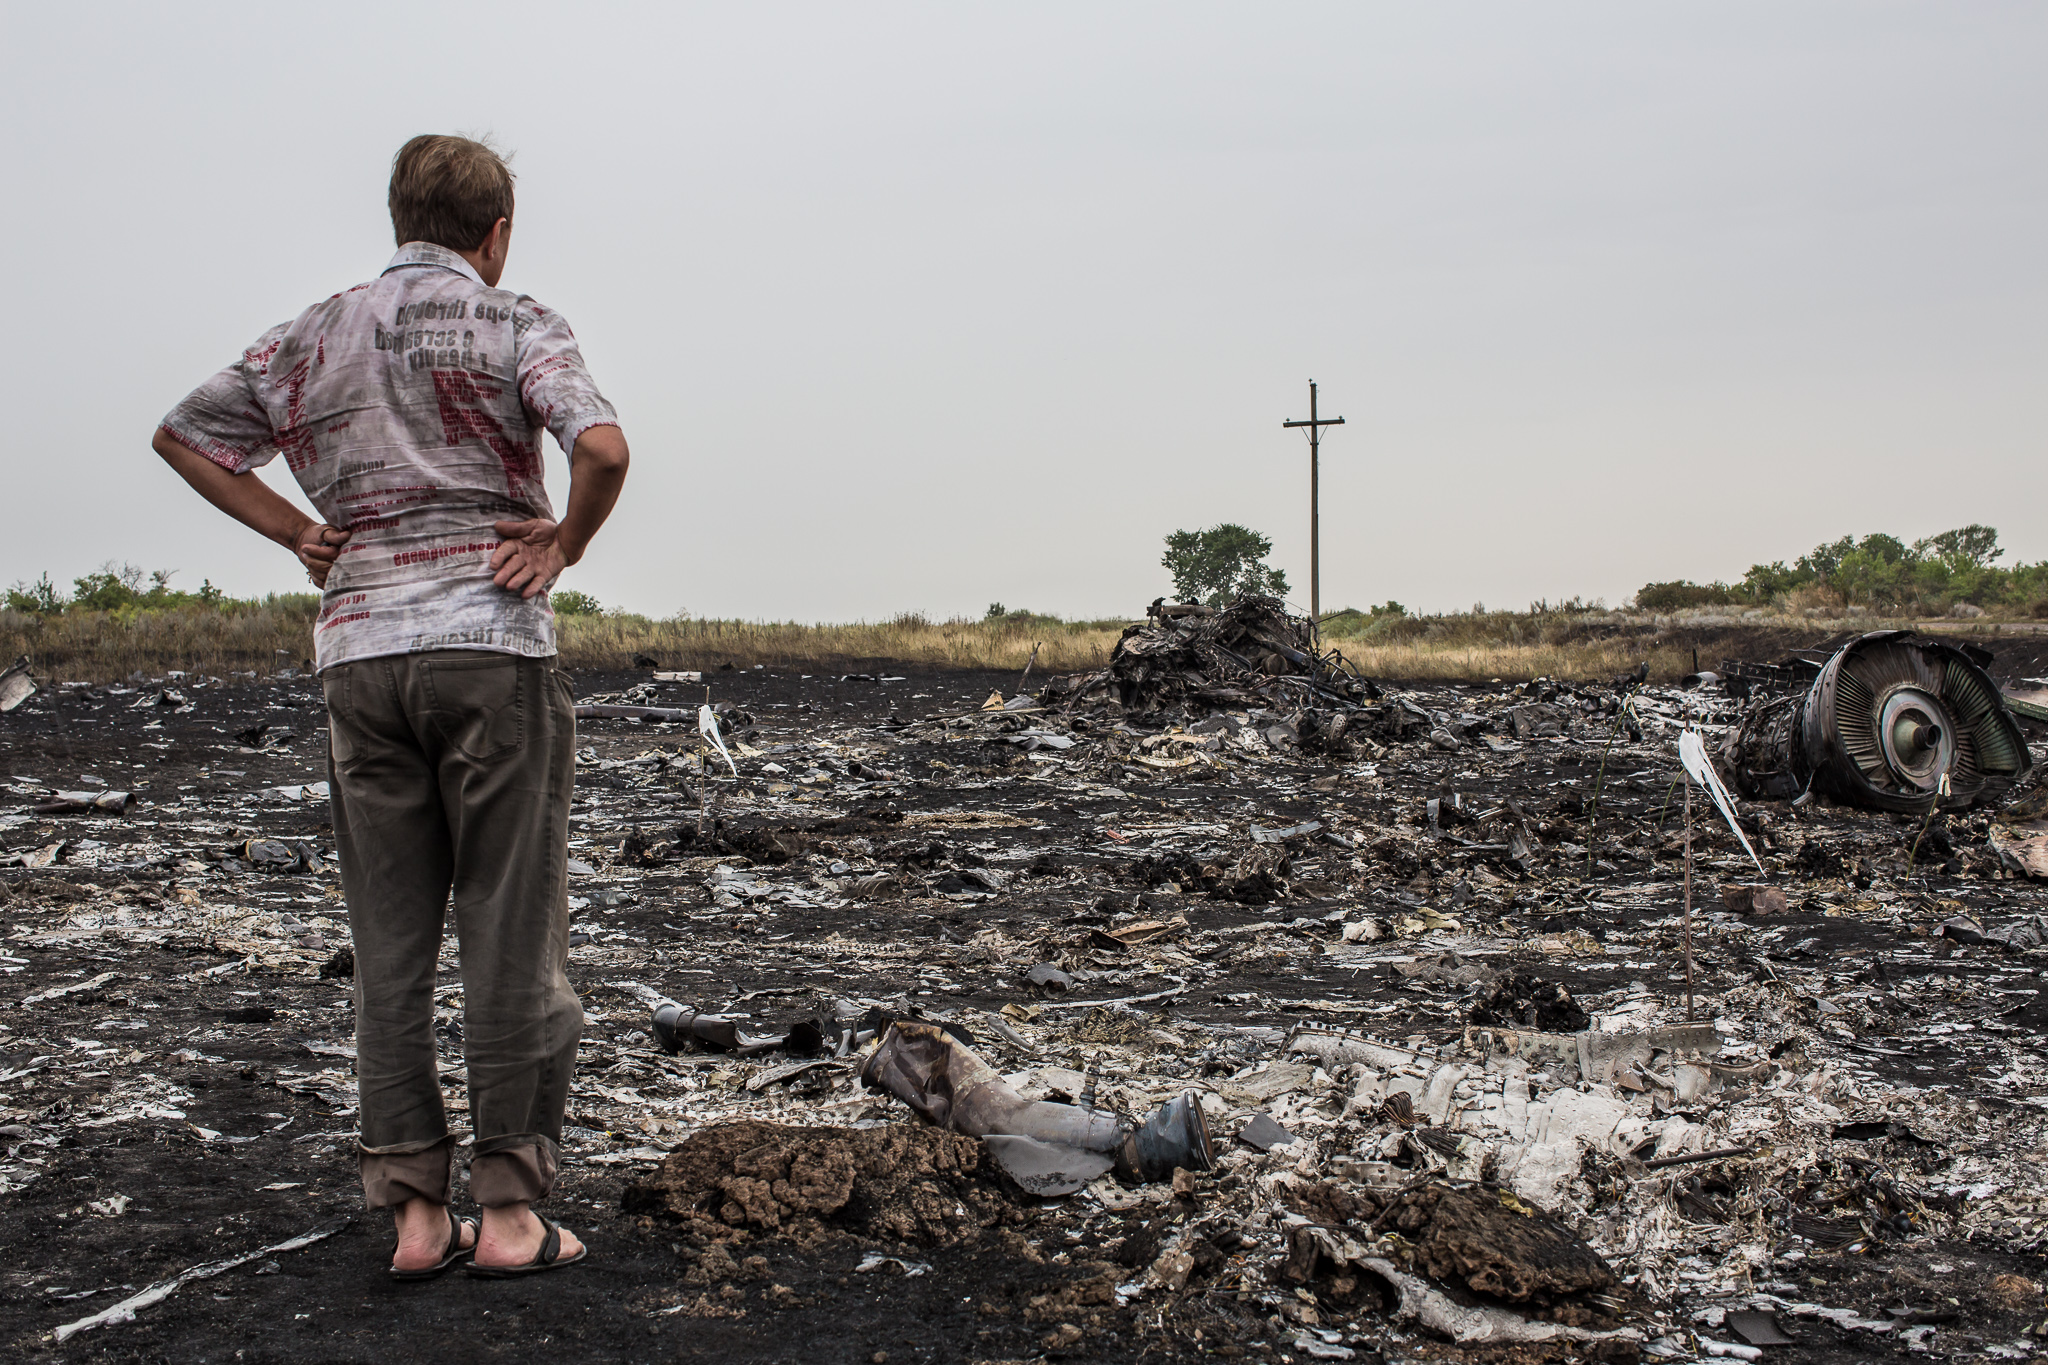 A man looks at debris from the crash of Malaysia Airlines flight MH17 on July 18, 2014 in Grabovo, Ukraine. Malaysia Airlines flight MH17 travelling from Amsterdam to Kuala Lumpur has crashed on the Ukraine/Russia border near the town of Shaktersk. The Boeing 777 was carrying 298 people.